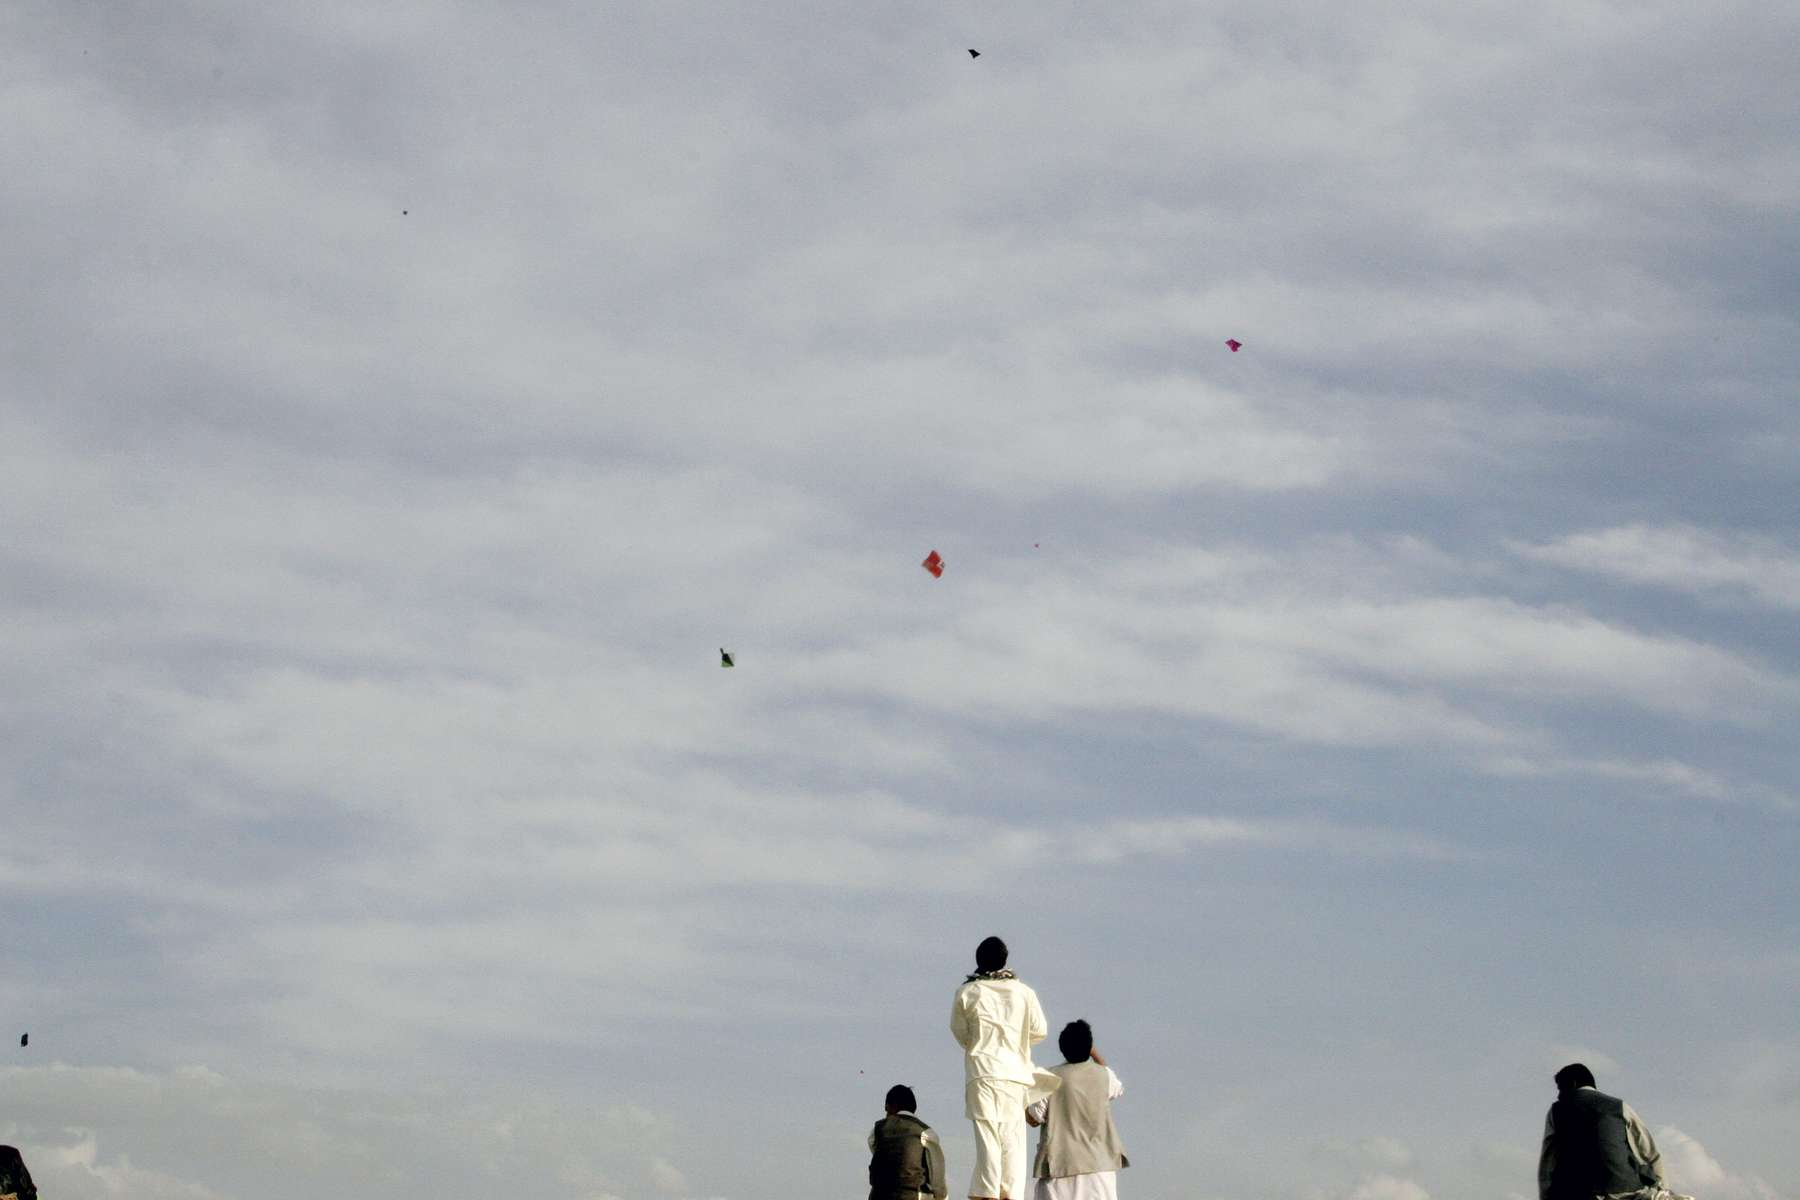 Flying kites in the late afternoon sky on a windy hilltop overlooking Kabul.